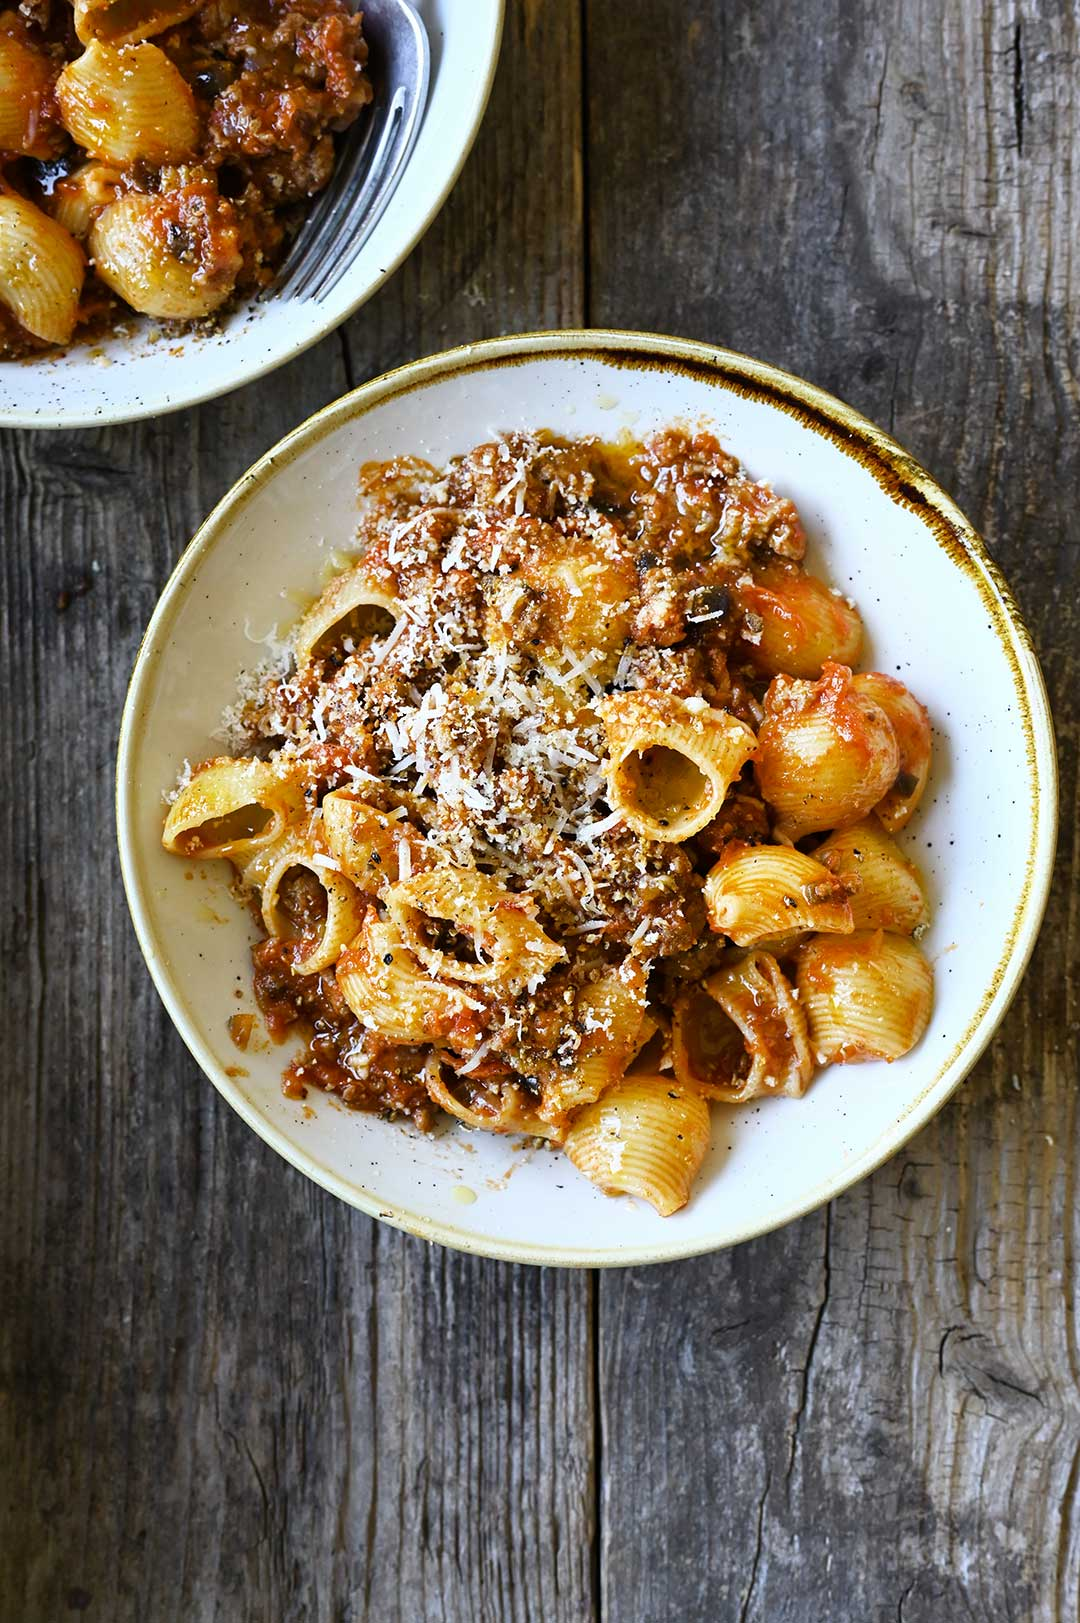 serving dumplings | Cheesy eggplant-beef bolognese pasta bake